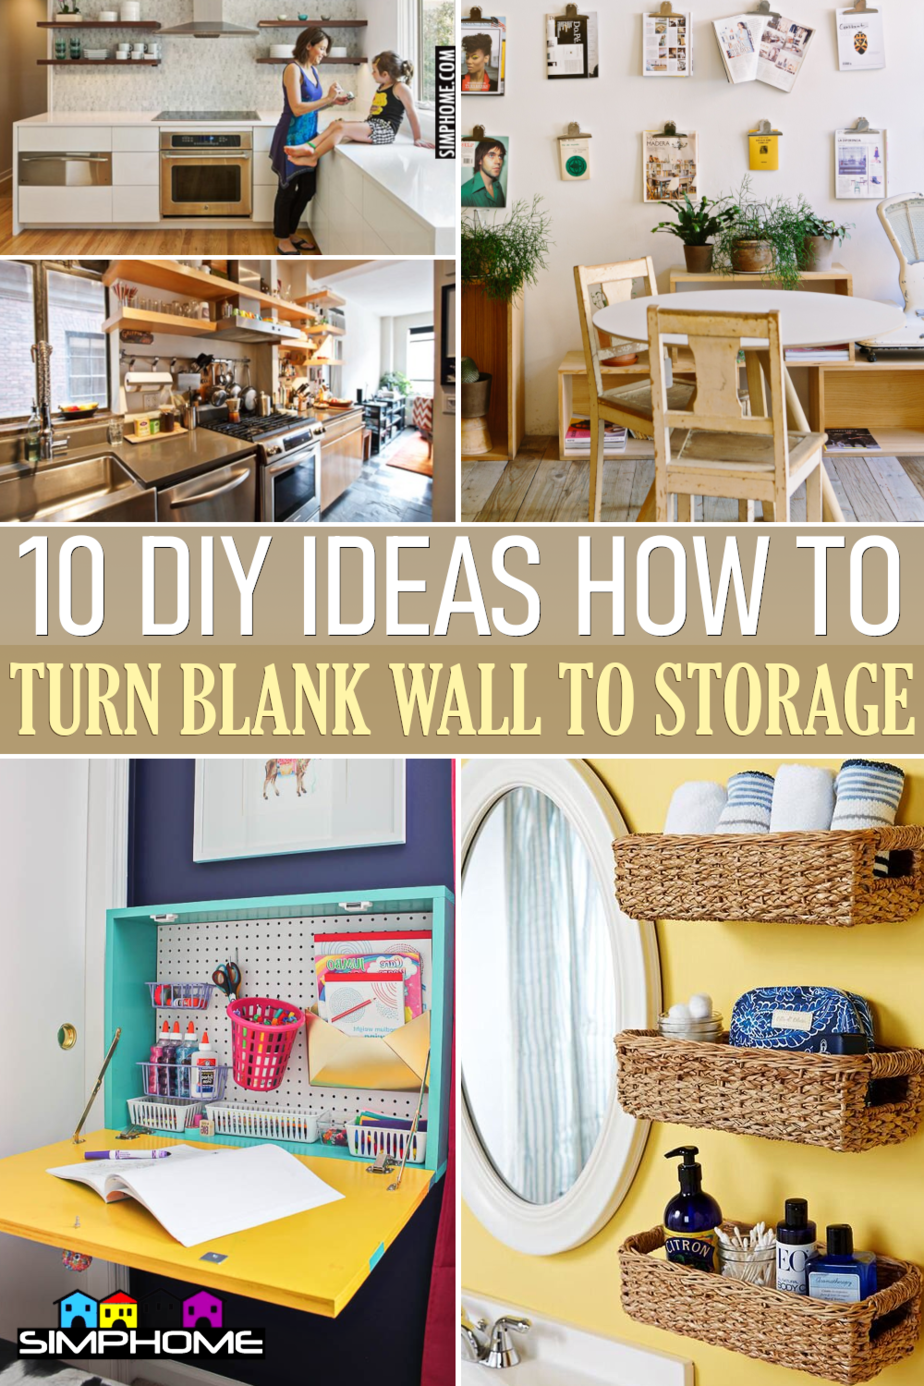 10 DIY Ideas How to Turn Blank Wall into Storage Space via SimphomecomFeatured